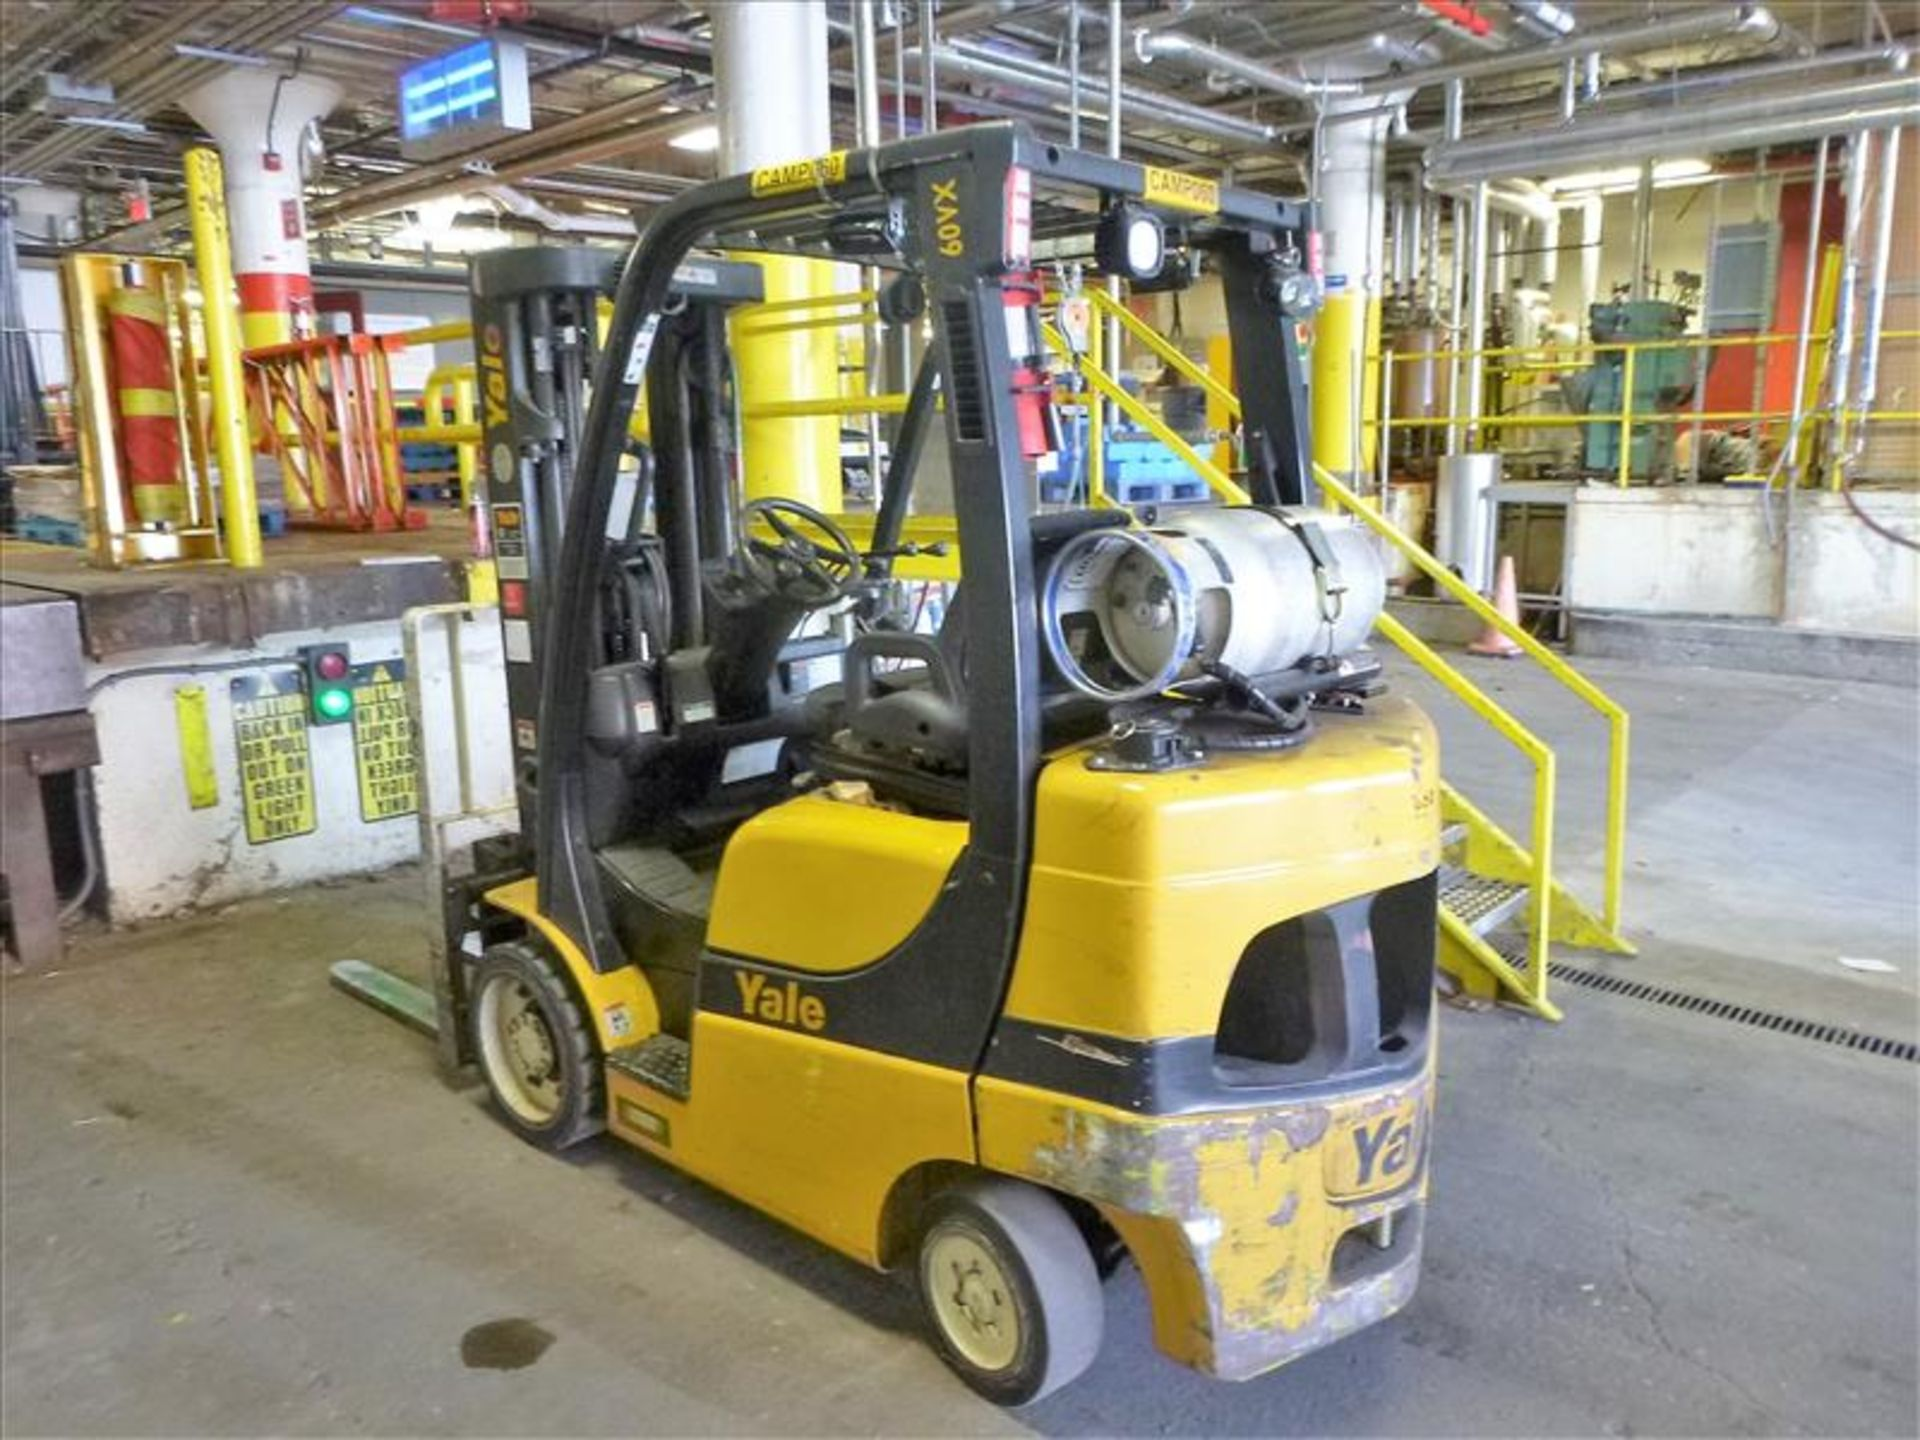 Lot 2006 - Yale fork lift truck, mod. GLC060VXNDSE085, ser. no. C910V01883N, LPG, 5500 lbs cap., 181 in. lift